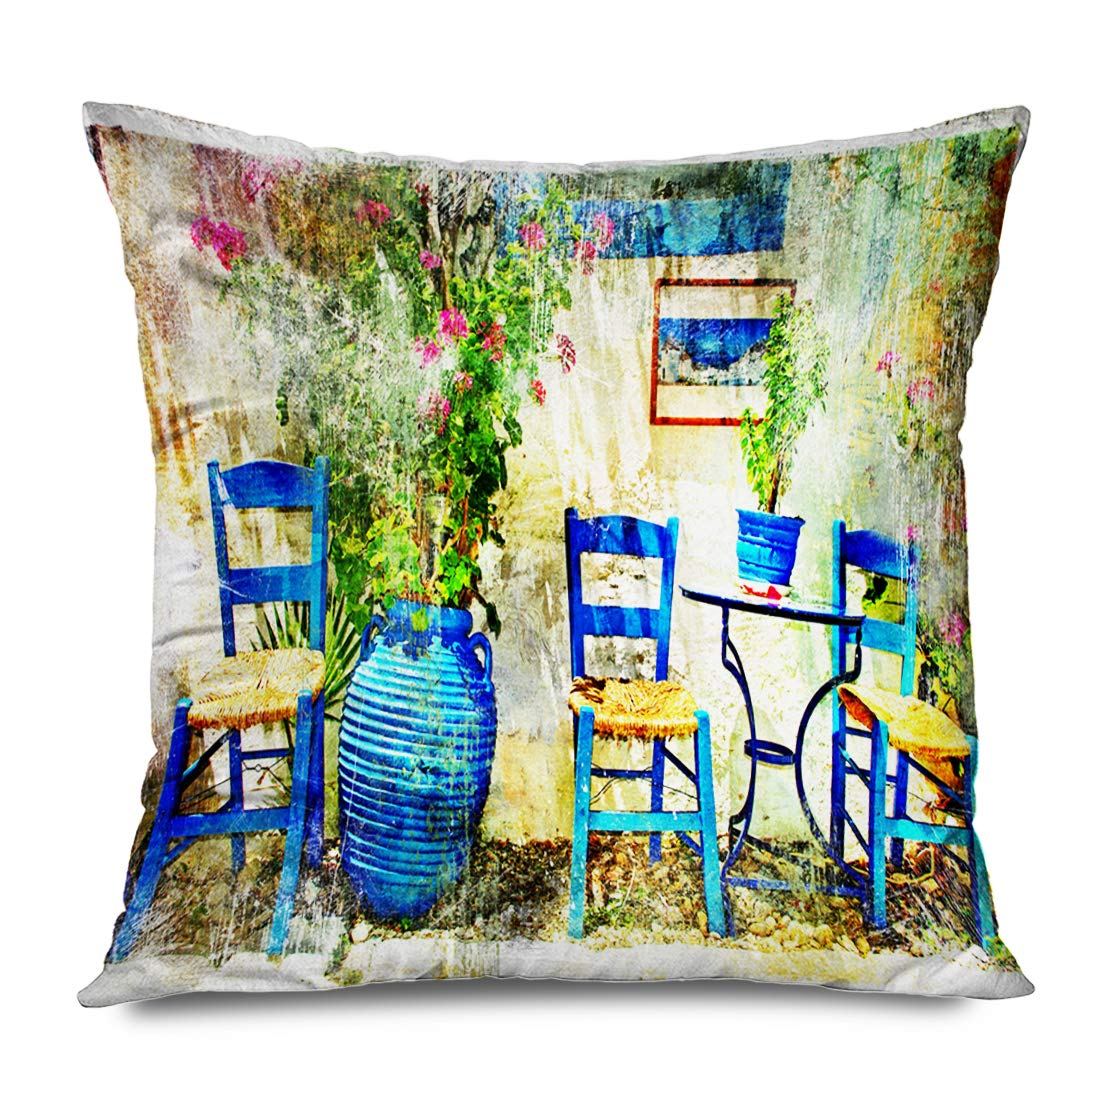 Ahawoso Throw Pillow Cover Square 18x18 Oil Pictorial Details Greece Old Chairs Taverna Artistic Vintage Town Greek Chania Crete Paint Decorative Pillowcase Home Decor Zippered Cushion Case